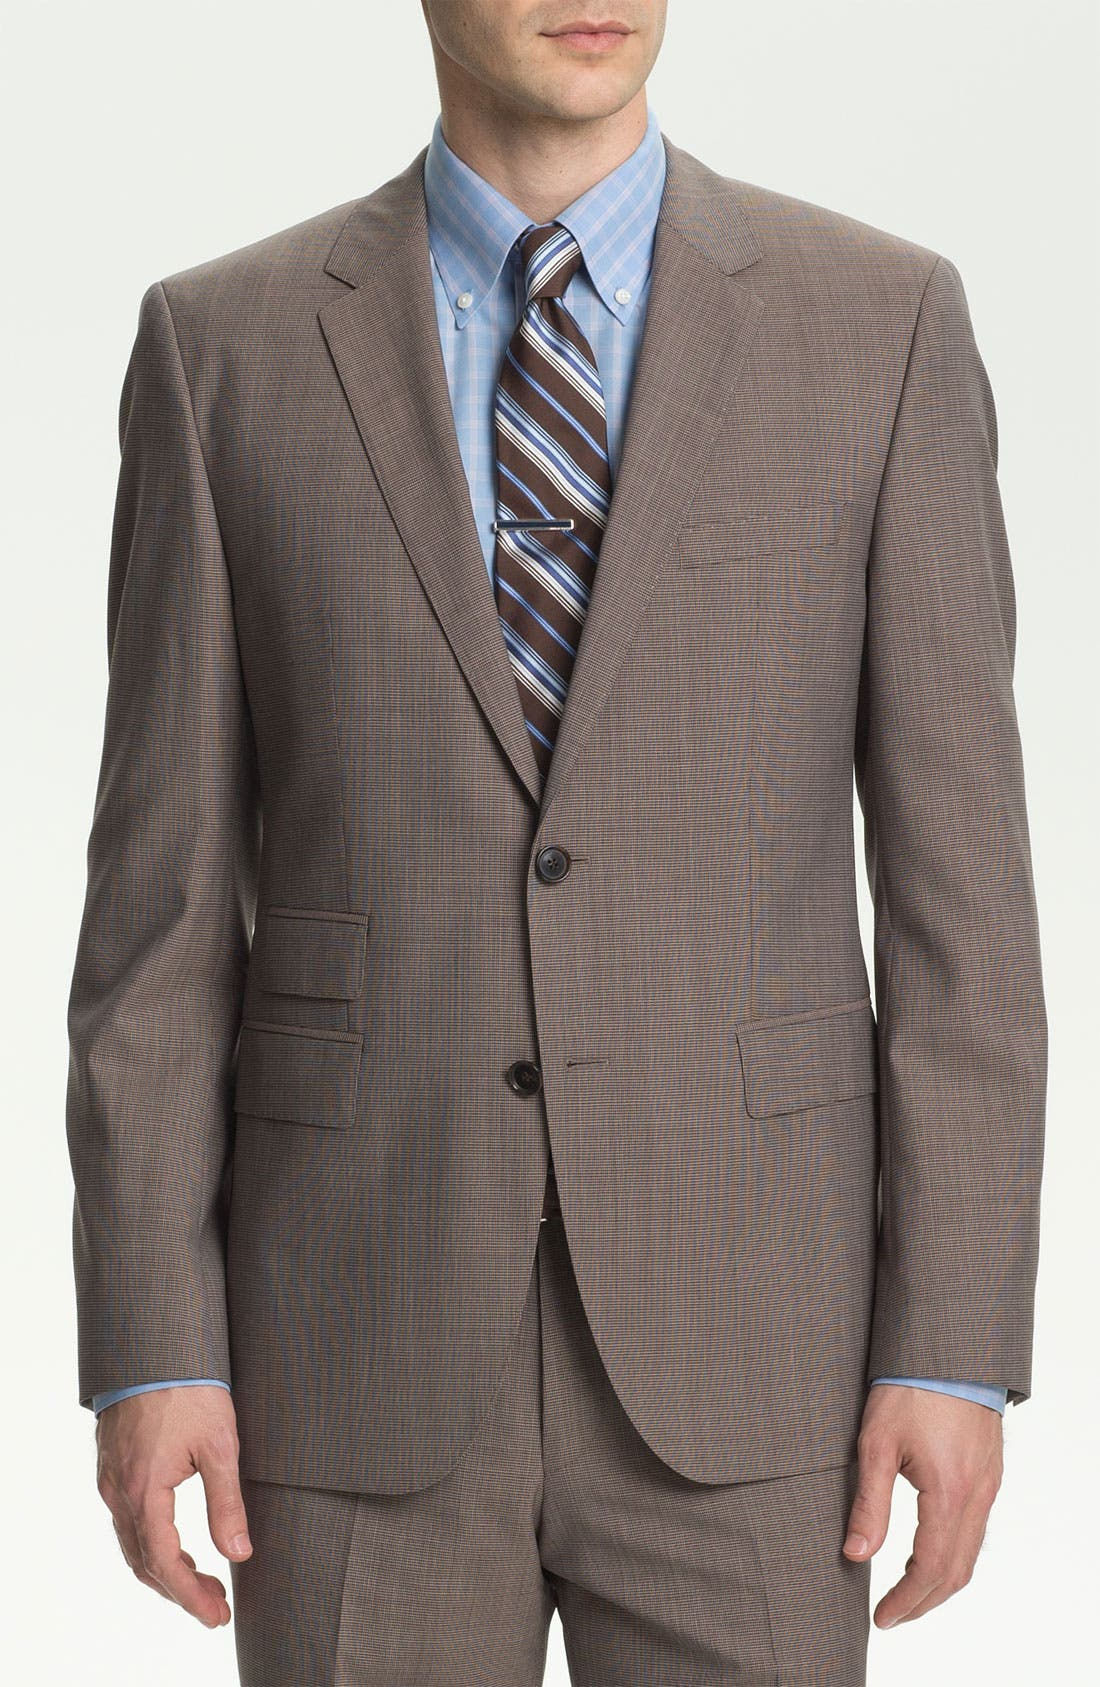 Main Image - BOSS HUGO BOSS 'The Sweet/Sharp' Trim Fit Houndstooth Suit